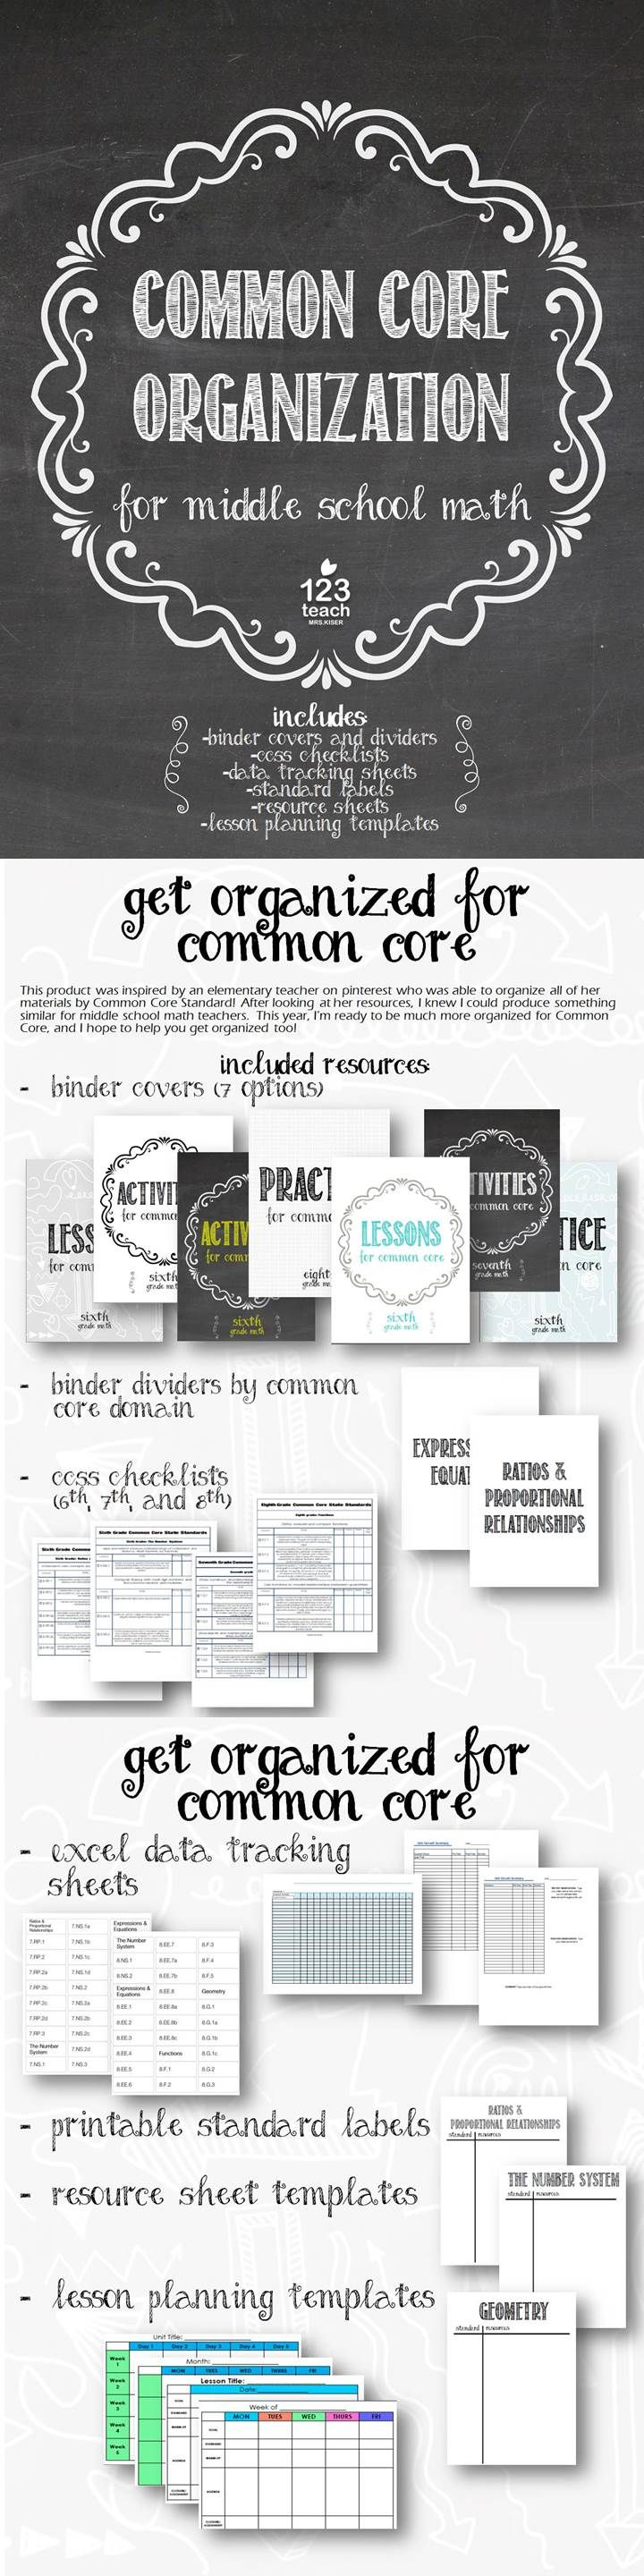 This set of middle school math resources for common core will help you get organized just in time for school to start!   Includes: binder covers and dividers, ccss checklists, data and growth tracking sheets, resource sheets, standards labels, lesson planning templates